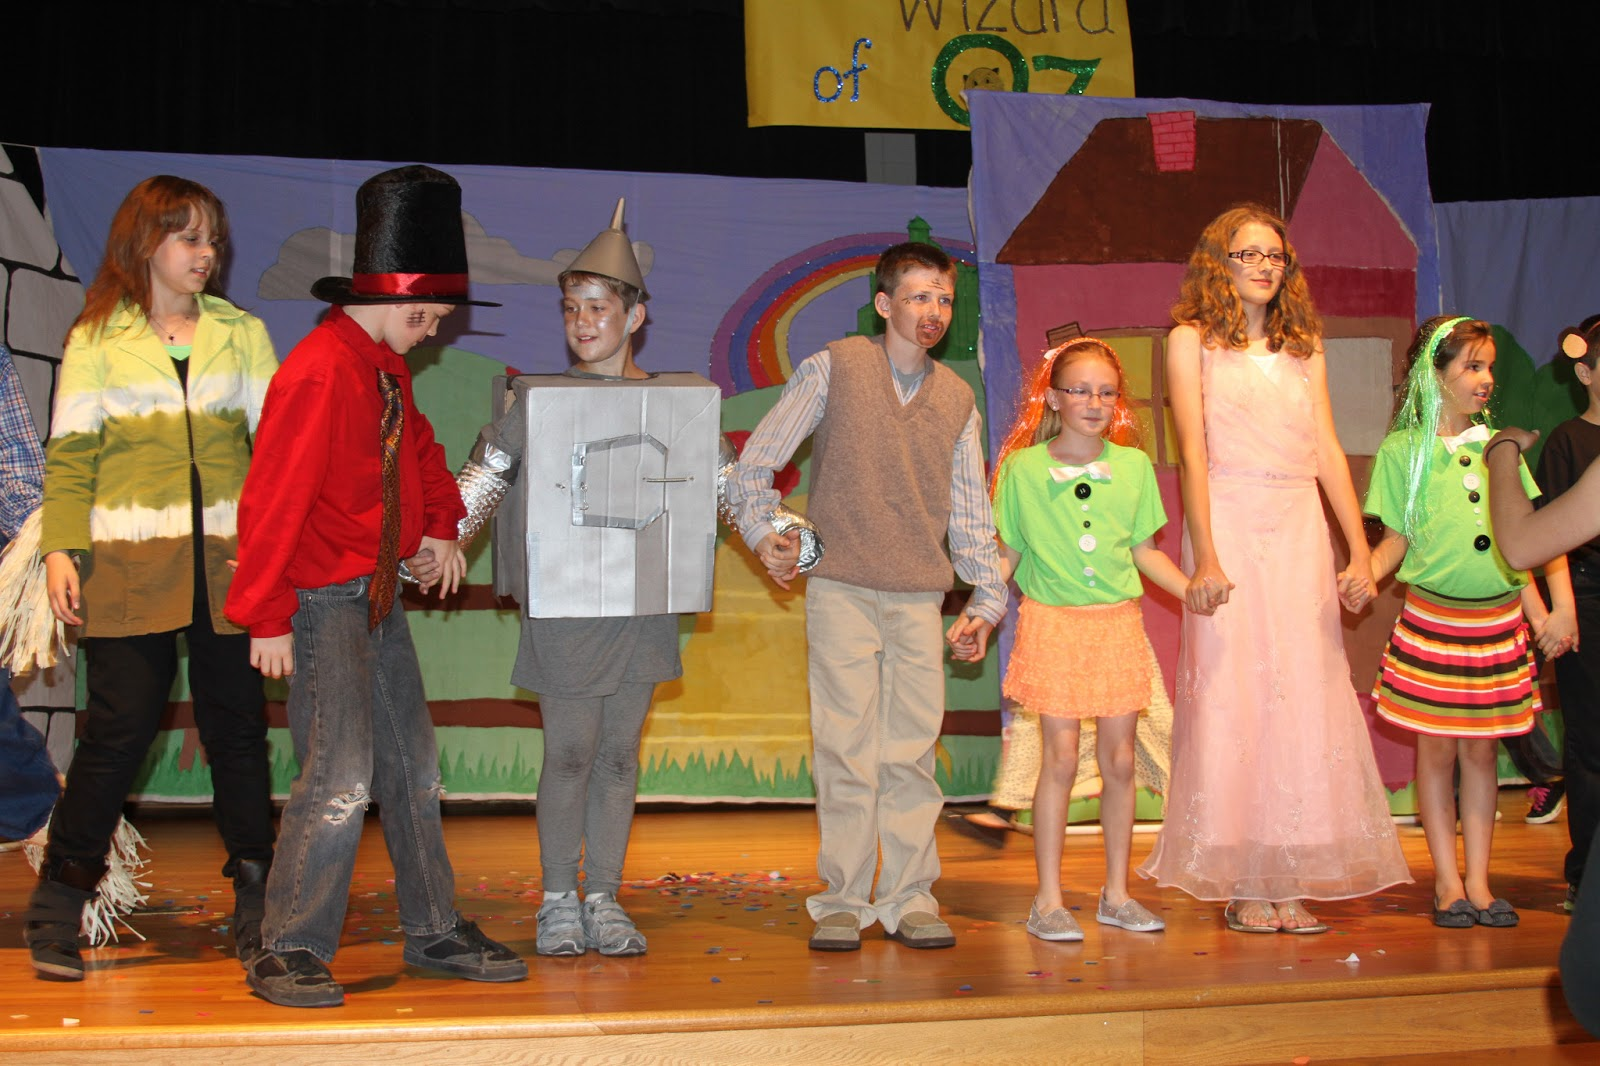 the play wizard of oz